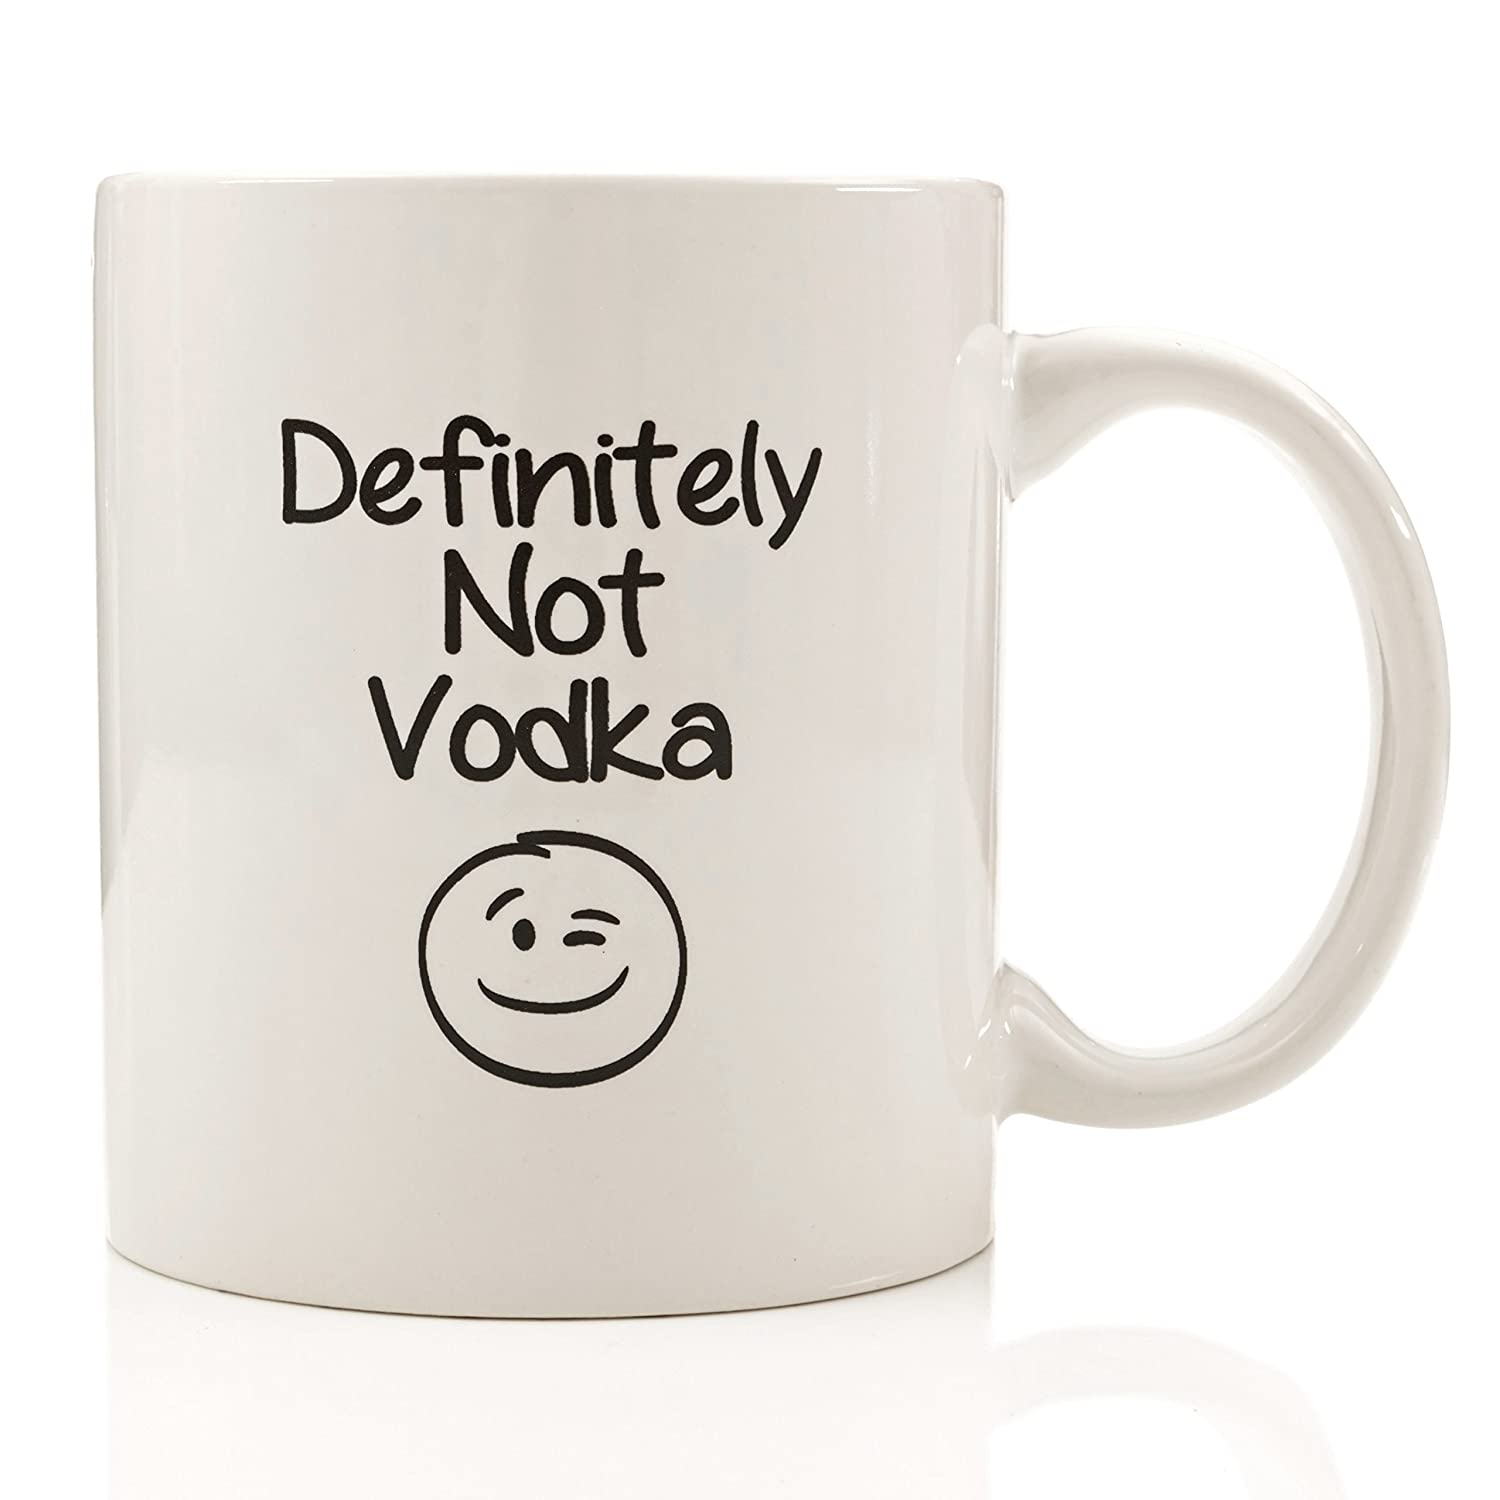 Definitely Not Vodka Funny Coffee Mug – Mother's Day Gifts for Mom – Cool Birthday Present Idea For Coworkers, Men & Women, Him or Her, Dad, Brother, Sister, Boyfriend, Girlfriend, Husband or Wife